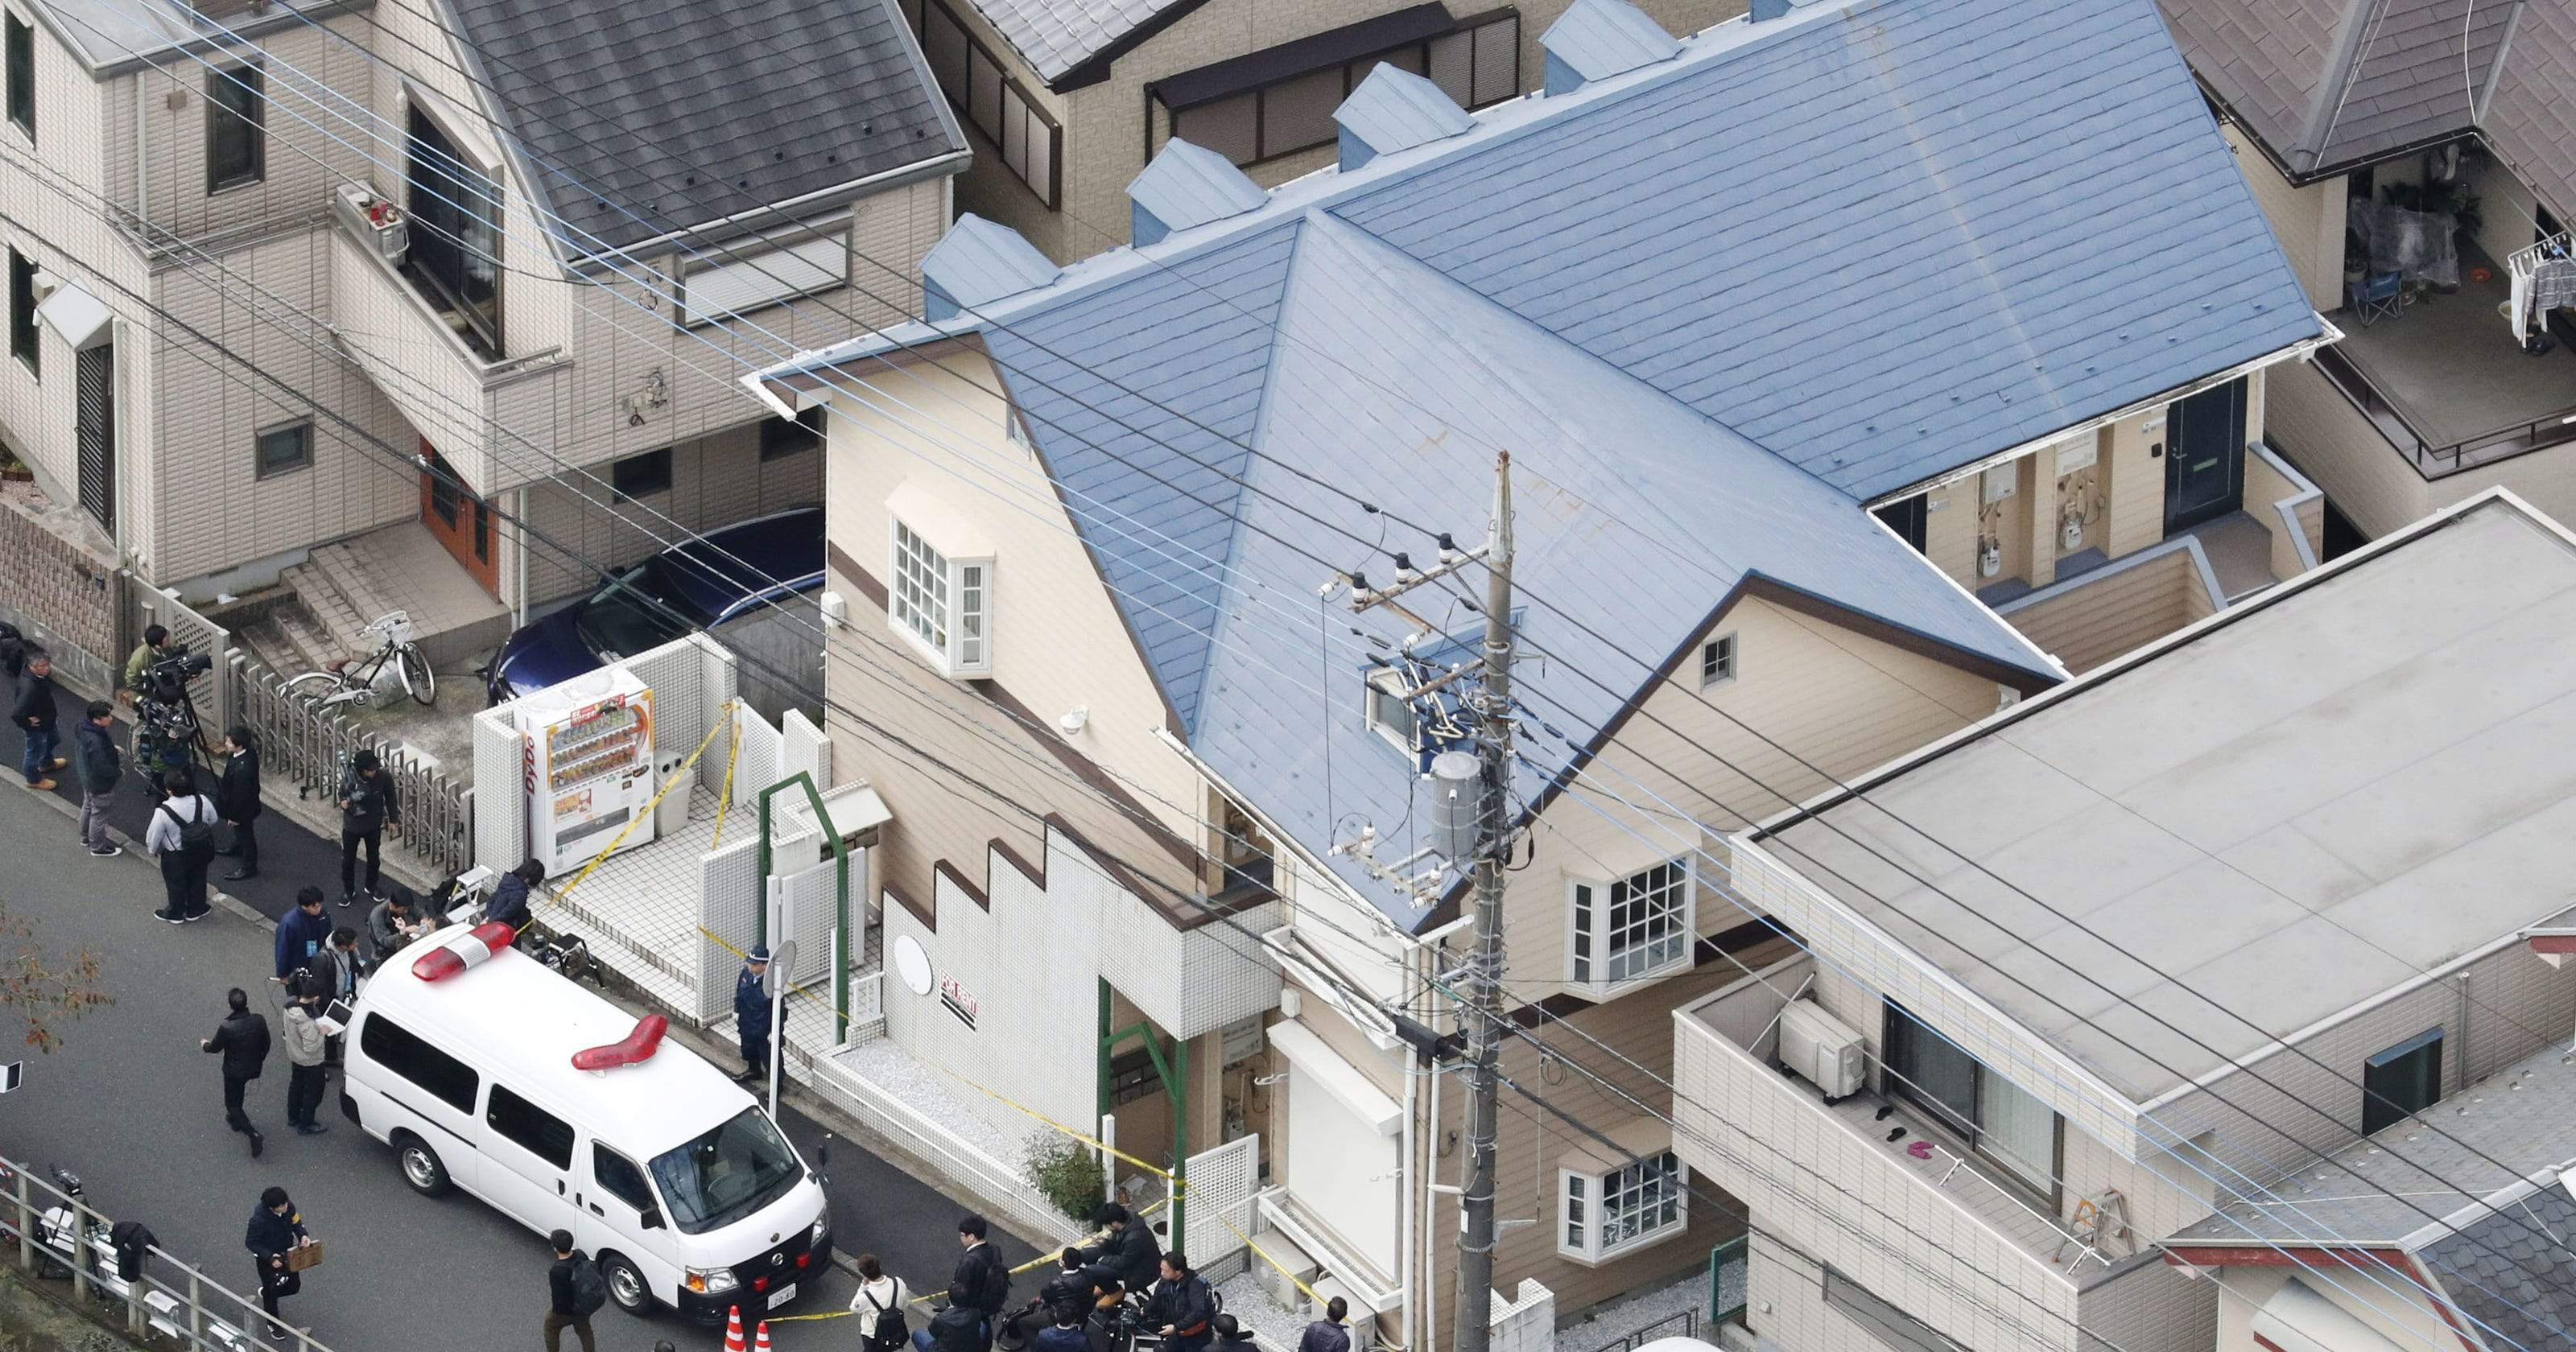 Japanese police find 9 dismembered bodies in coolers